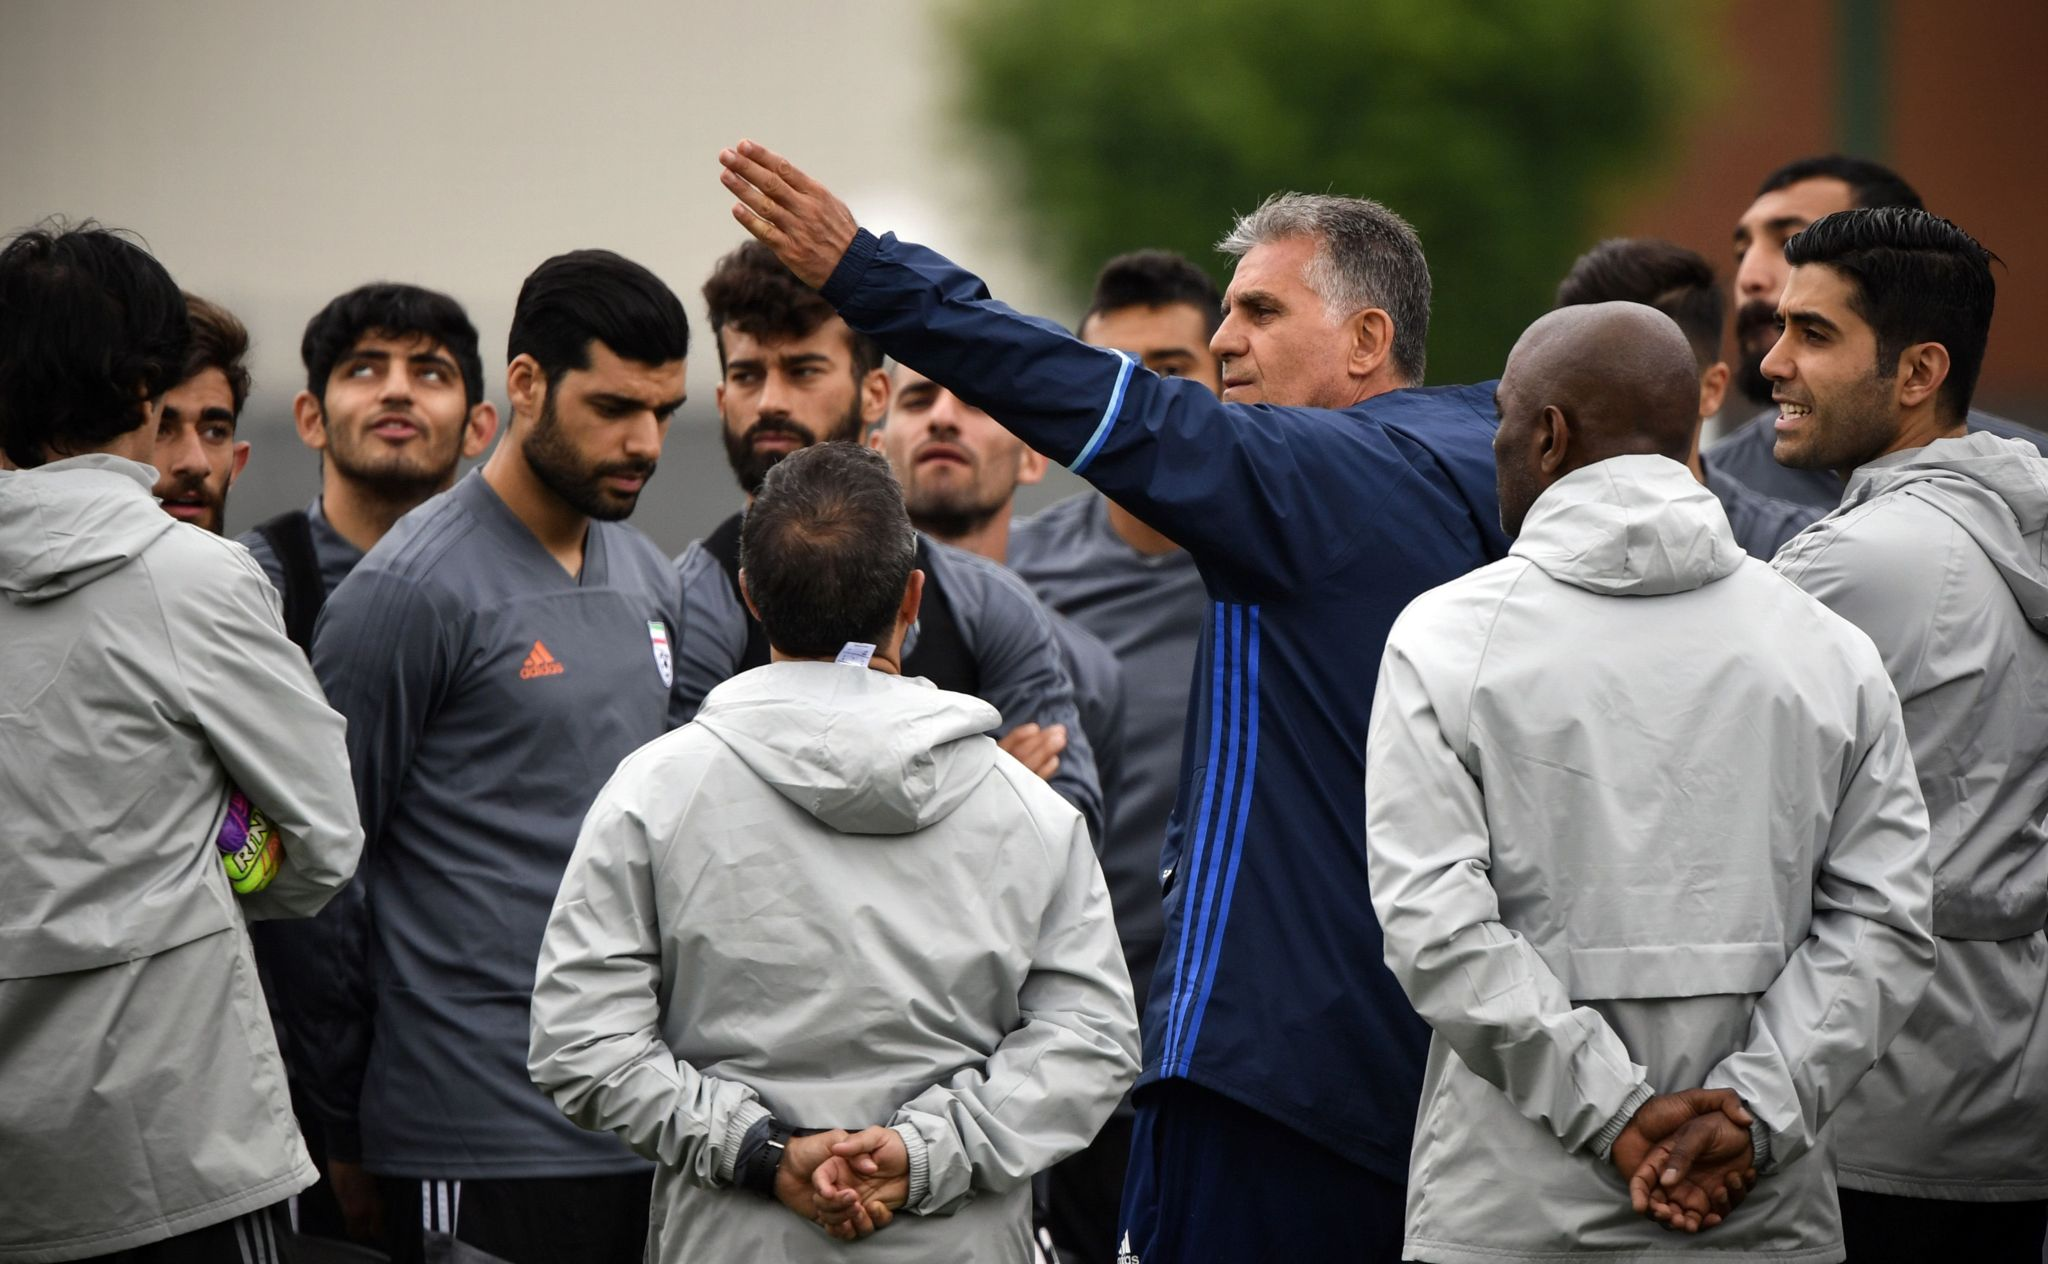 Iran's Portuguese coach Carlos Queiroz gestures as he talks to his players a training session in Bakovka outside Moscow on June 12, 2018, ahead of the Russia 2018 World Cup tournament.